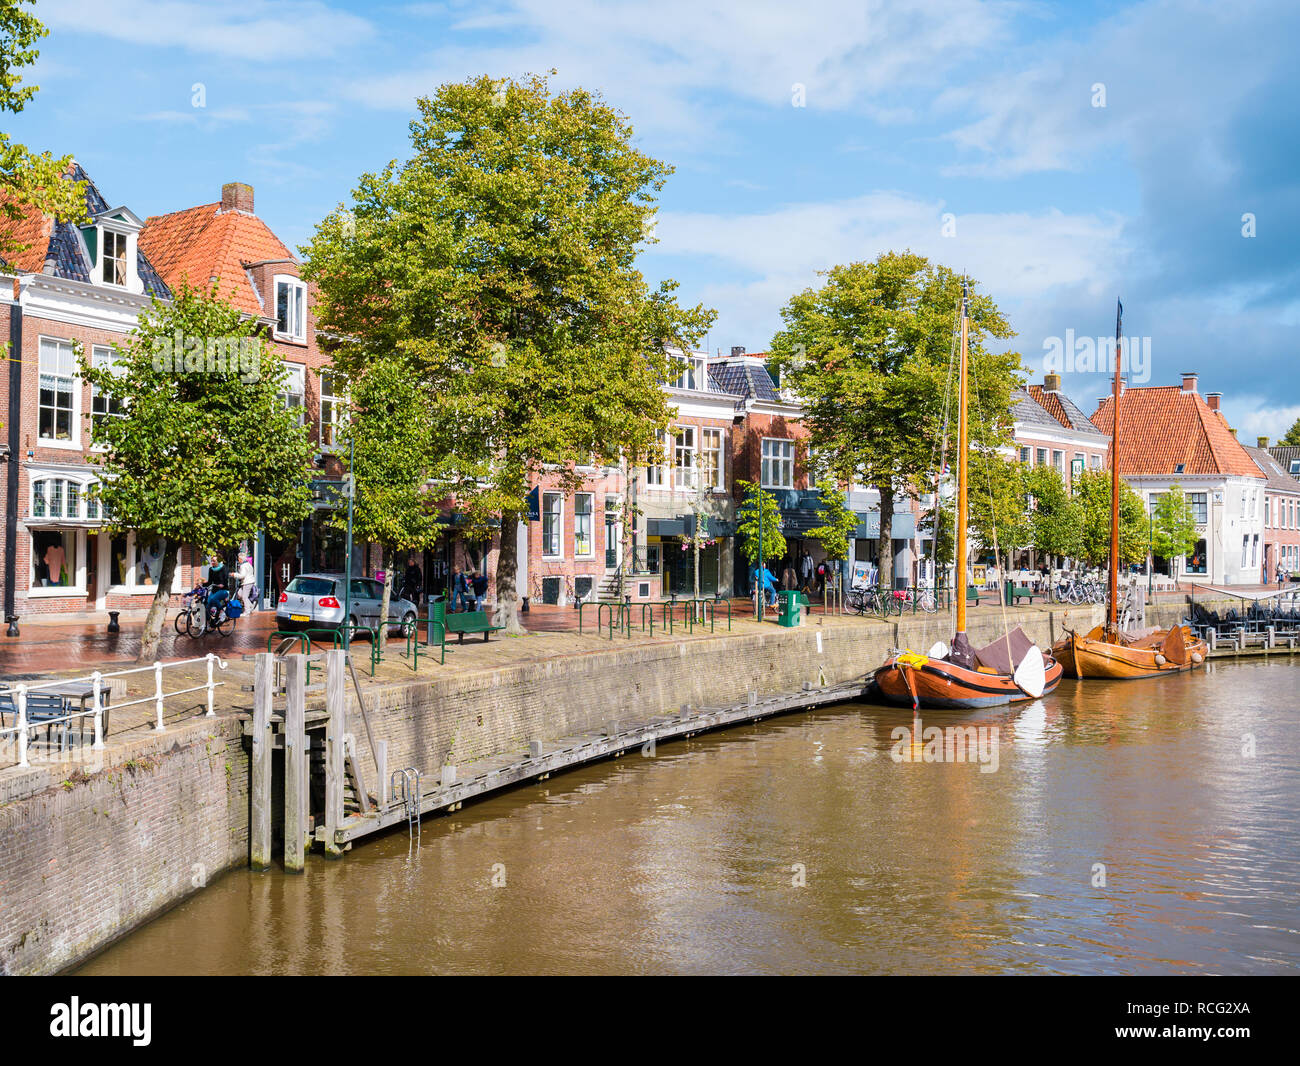 People and shops on quayside of historic harbour in old town of Dokkum, Friesland, Netherlands Stock Photo